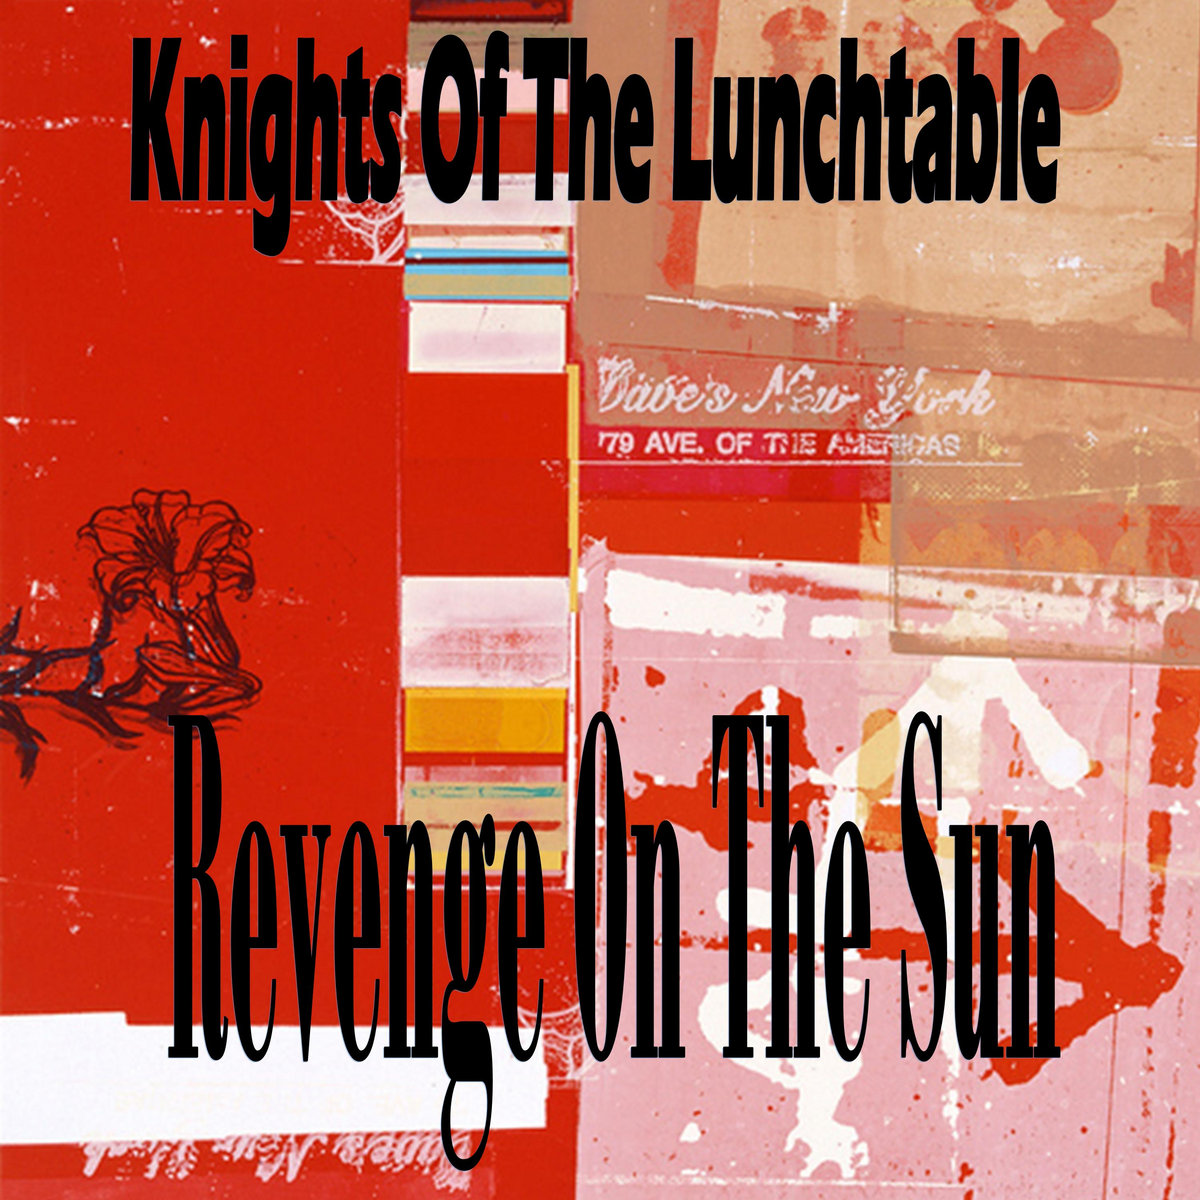 Desert Song Knights Of The Lunchtable